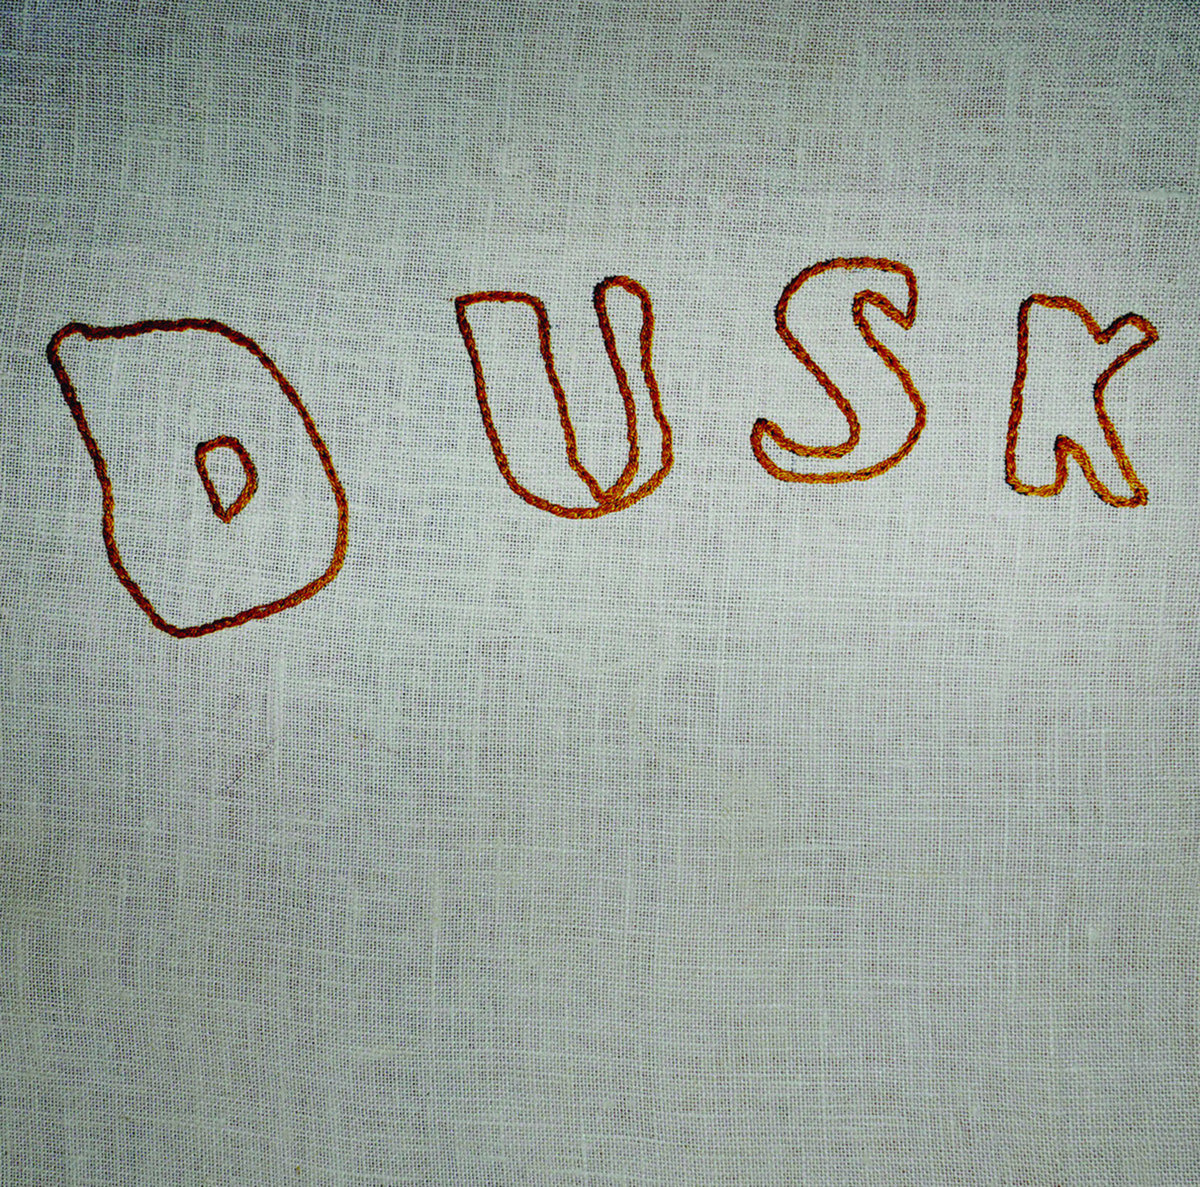 Dusk – The Pain of Loneliness (Goes On And On)